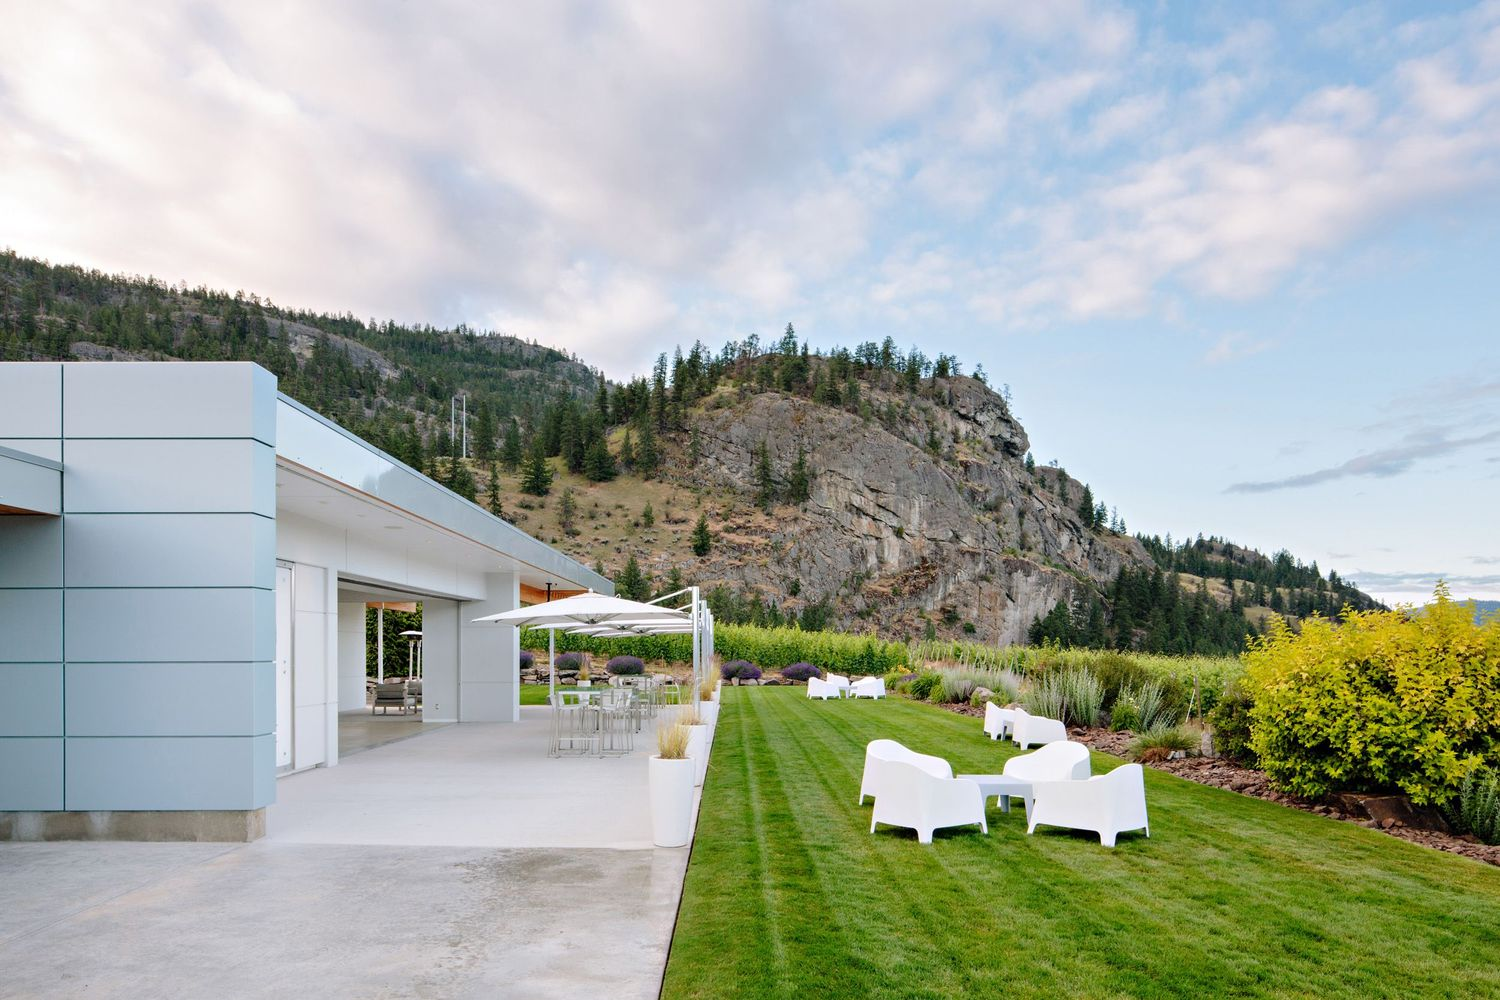 patio seating at okanagan winery